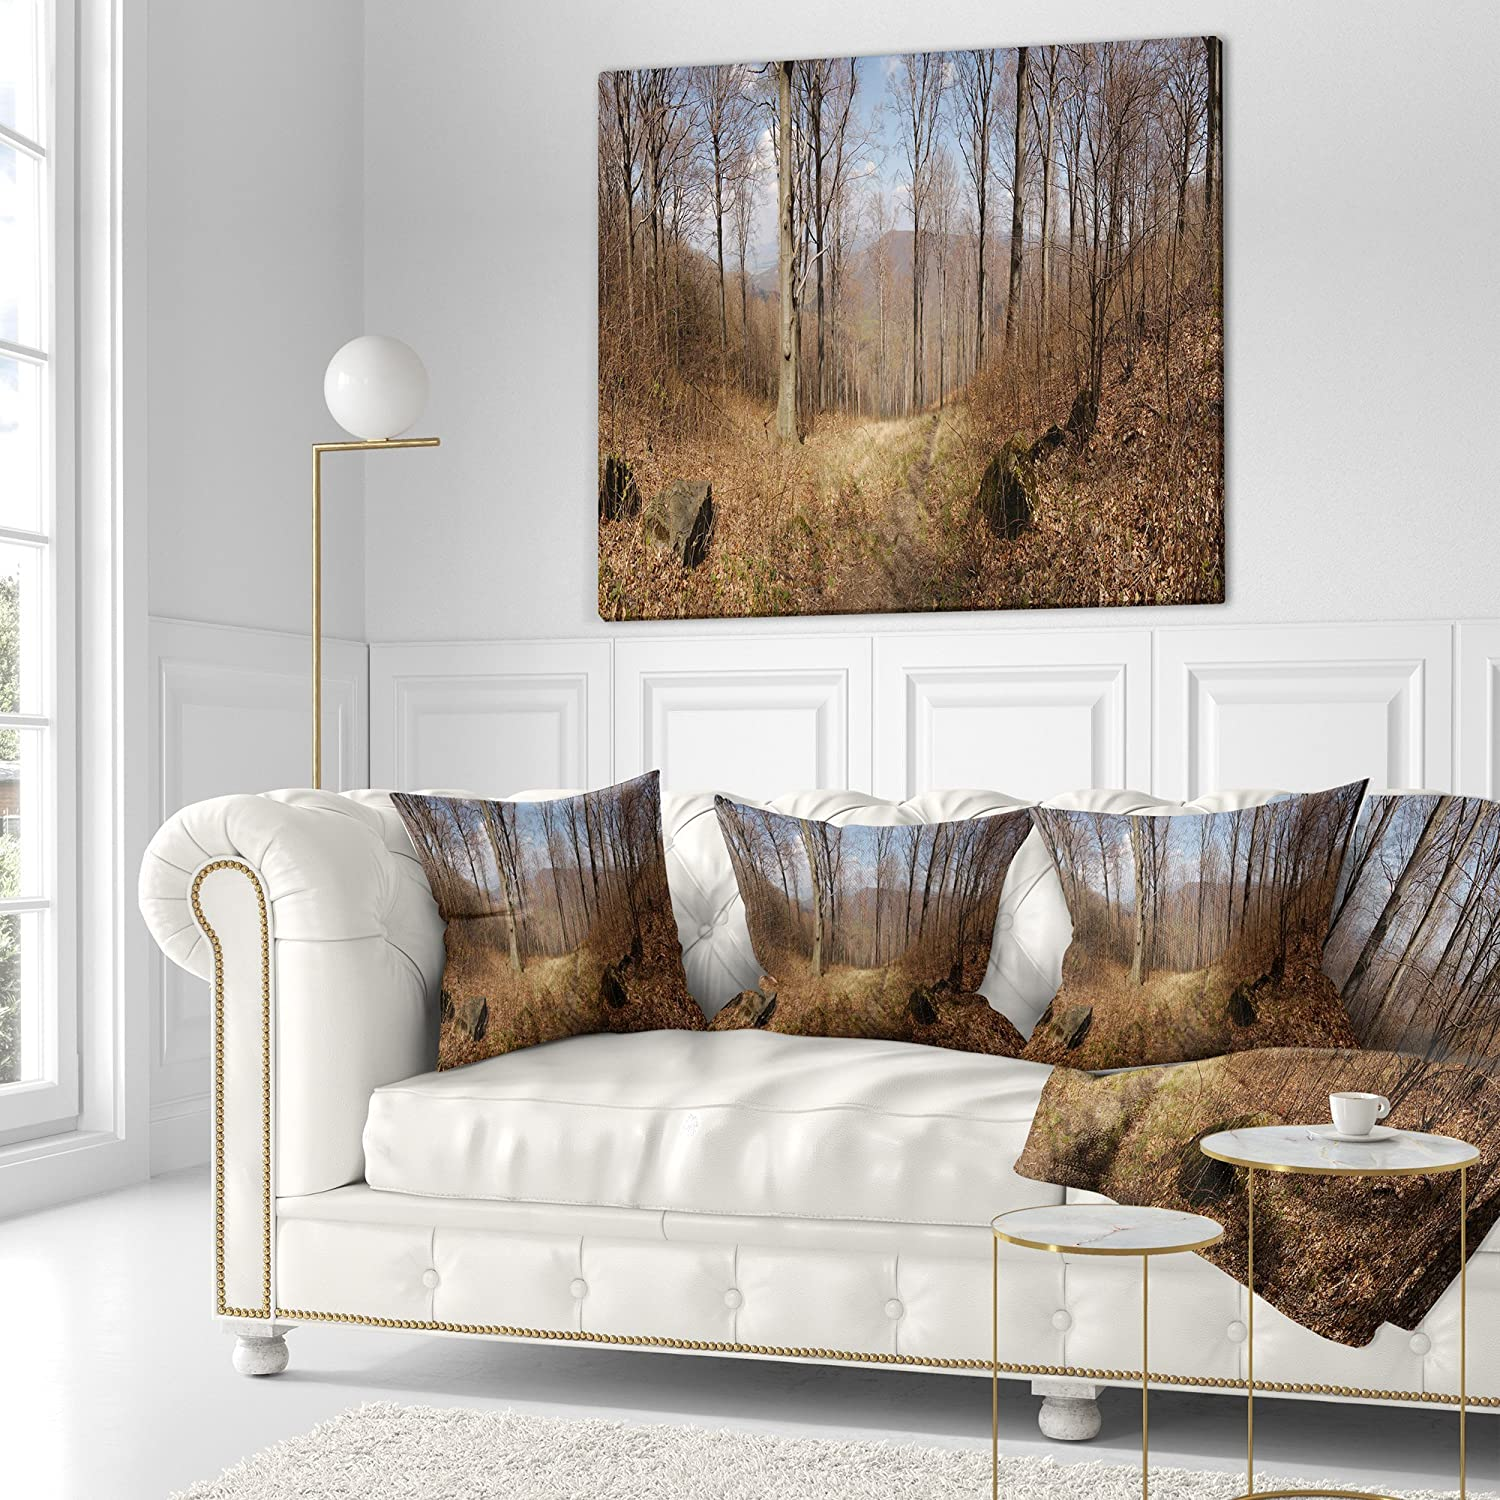 x 16 in Insert Printed On Both Side Sofa Throw Pillow 16 in Designart CU11764-16-16 Scenery with Bare Trees Modern Forest Cushion Cover for Living Room in